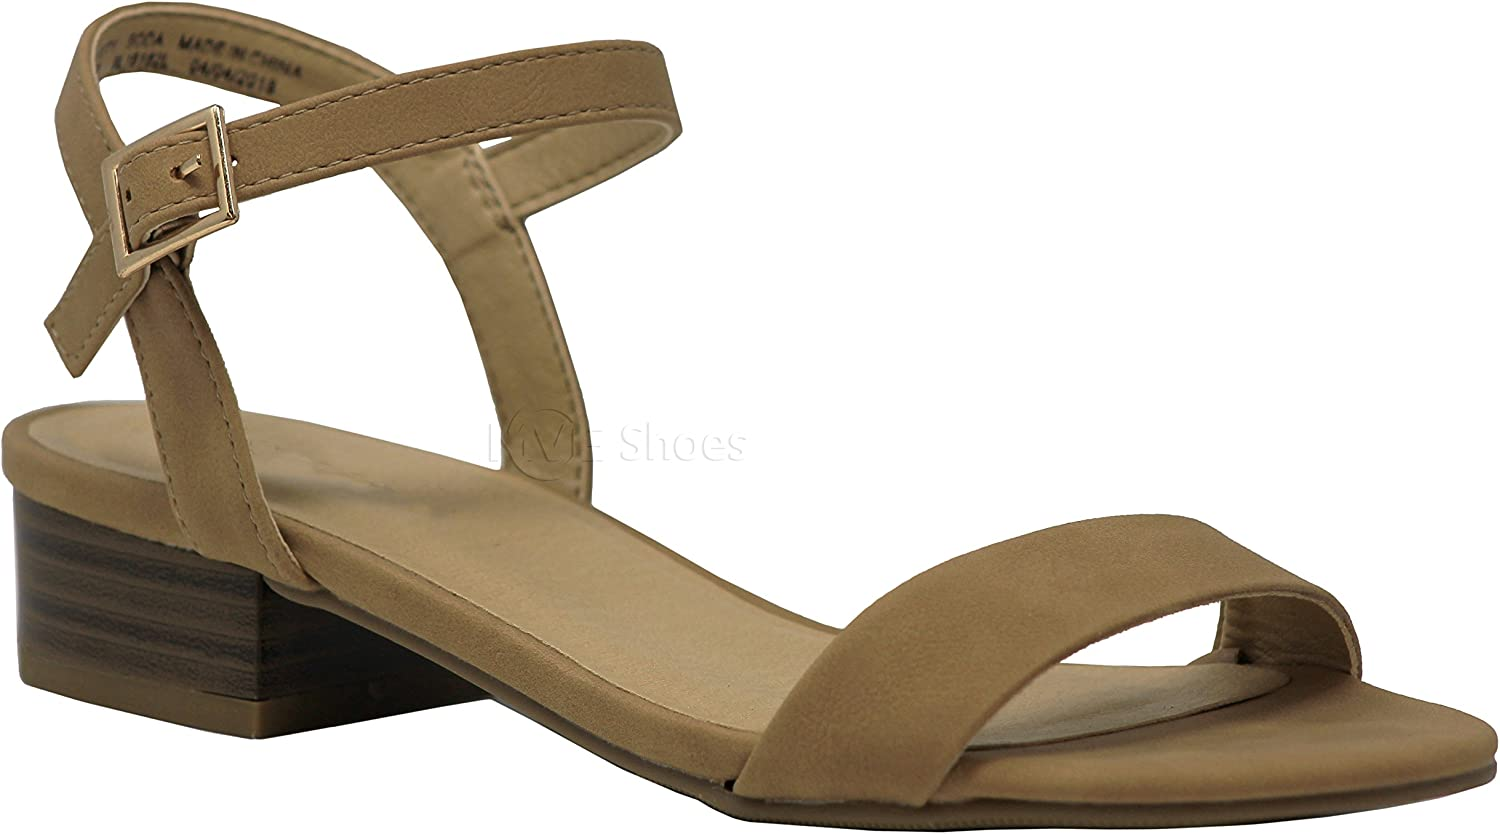 MVE shoes Girl's Cute Summer Flat Sandals - Comfy Ankle Strap Flat shoes for Girls